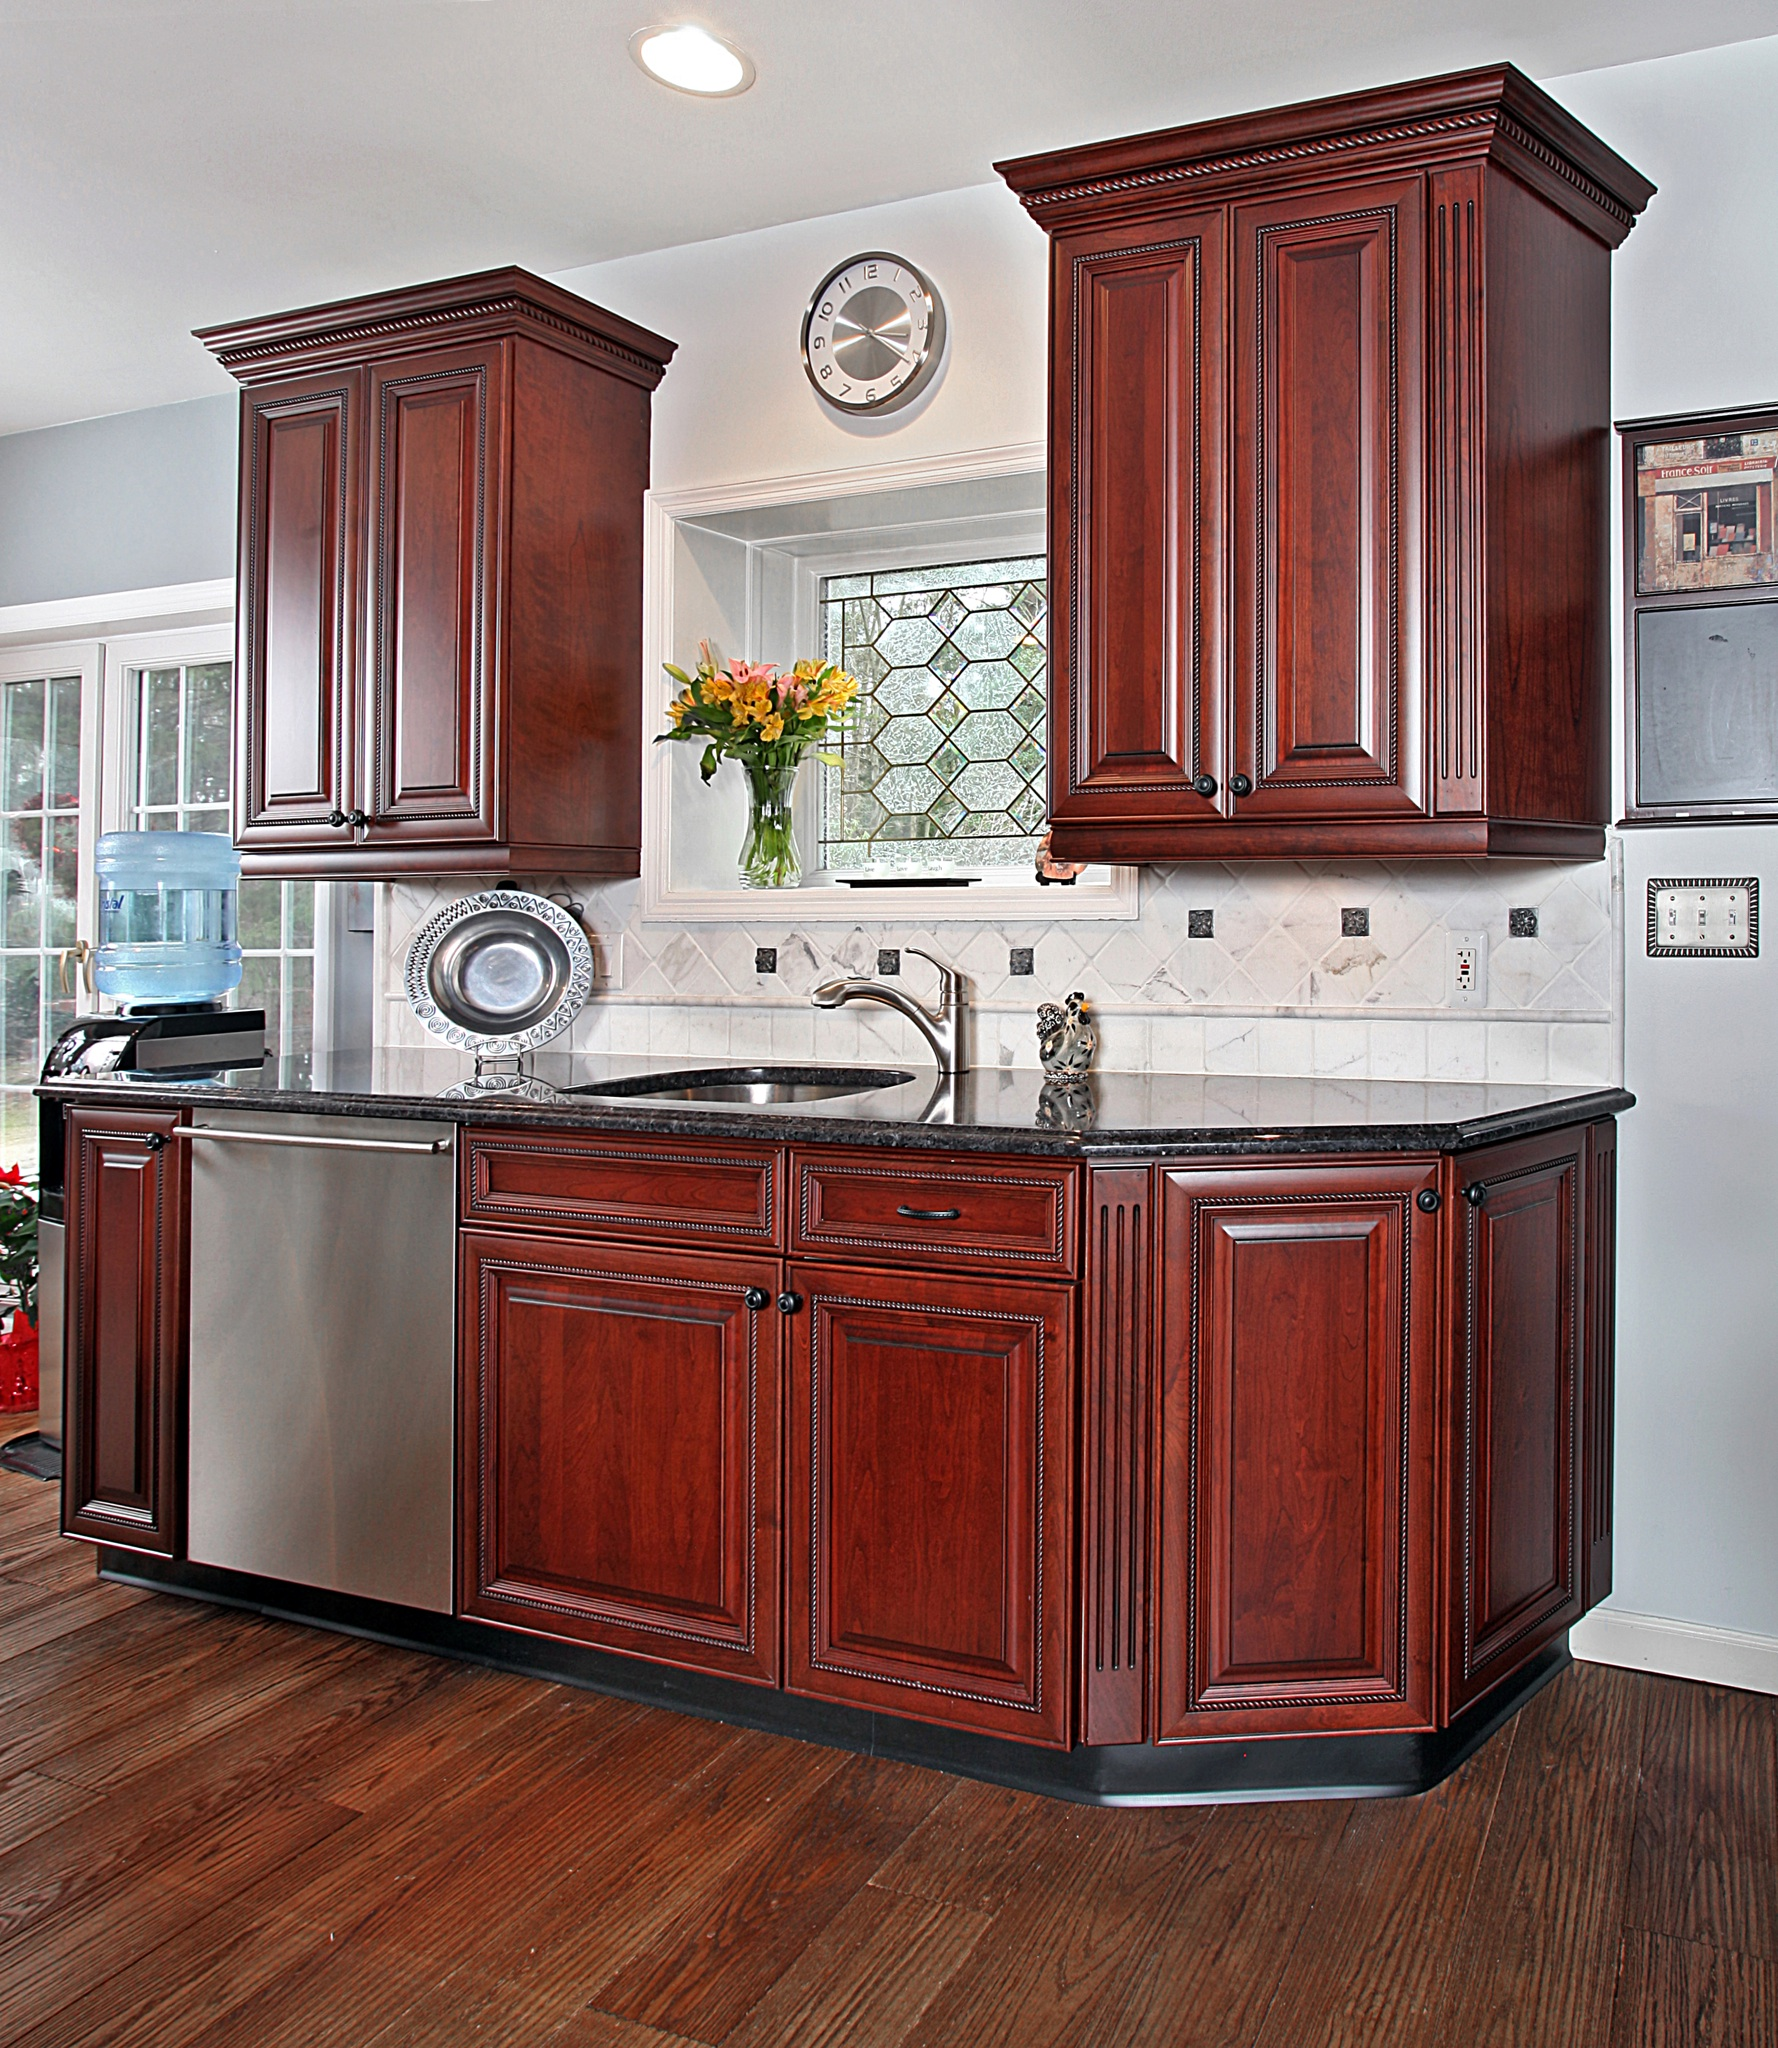 Endless Options Wood Mode Cabinetry: What Are The Benefits Of Adding Step Shelves To A Kitchen?